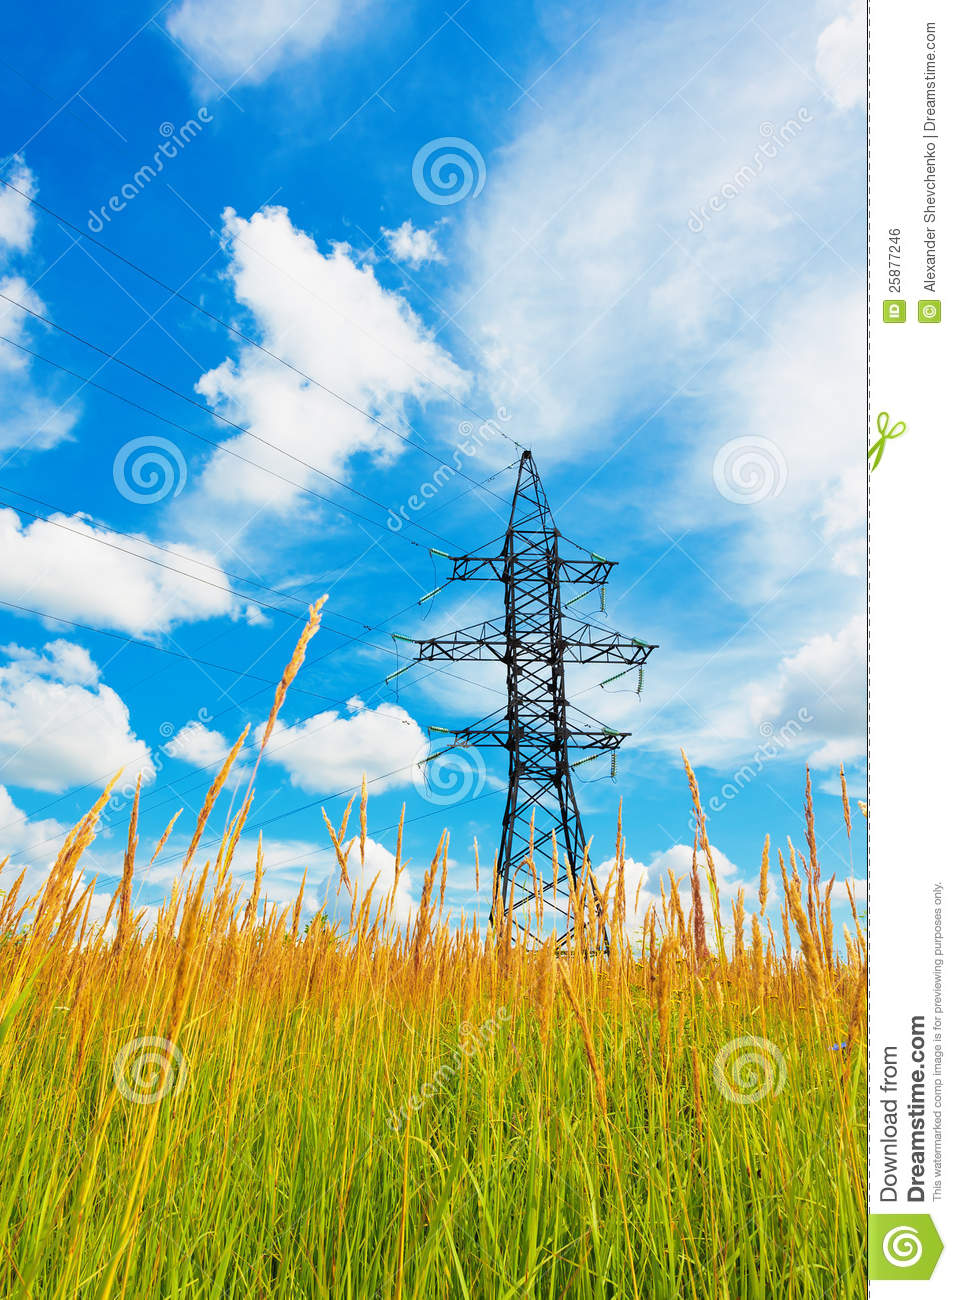 High Voltage Weeder : High voltage lines and cloudy sky royalty free stock image